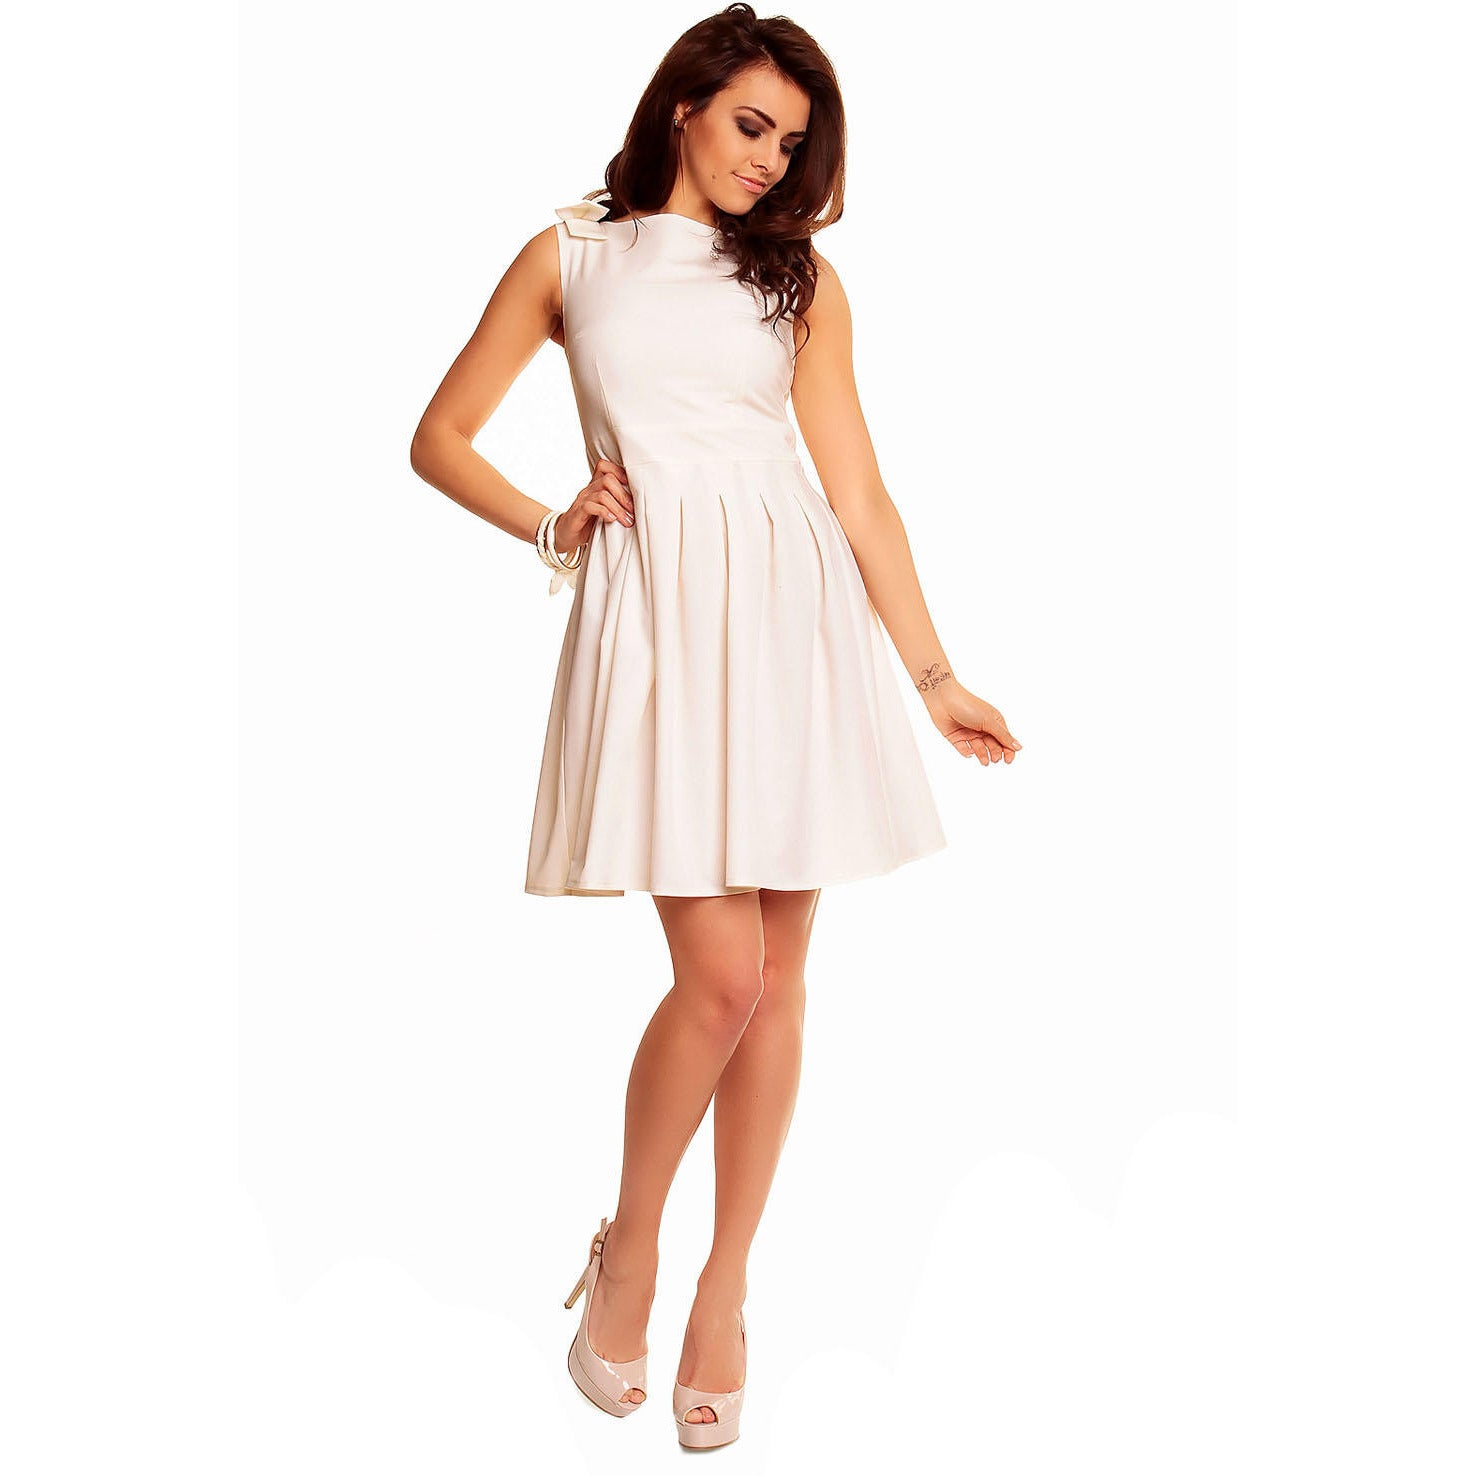 Creamy Flippy Dress With Bend Sleeveless Shoulder LAVELIQ - LAVELIQ - 2